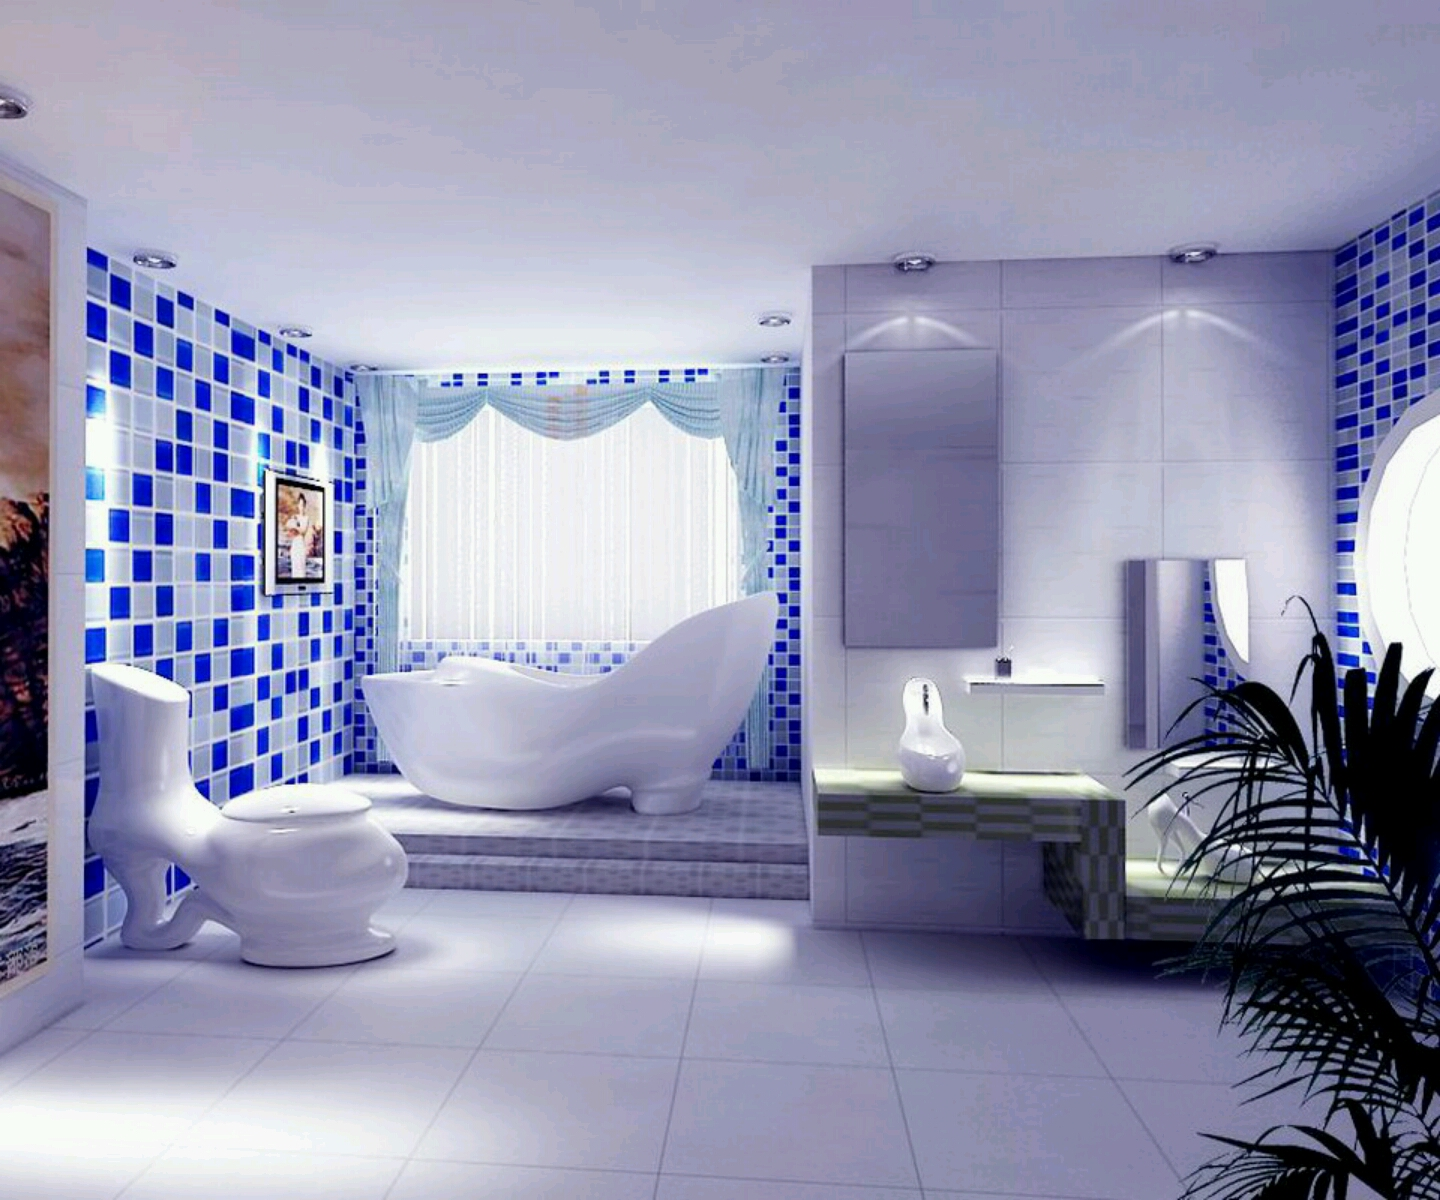 furniture home designs ultra modern washroom designs ideas On home washroom design